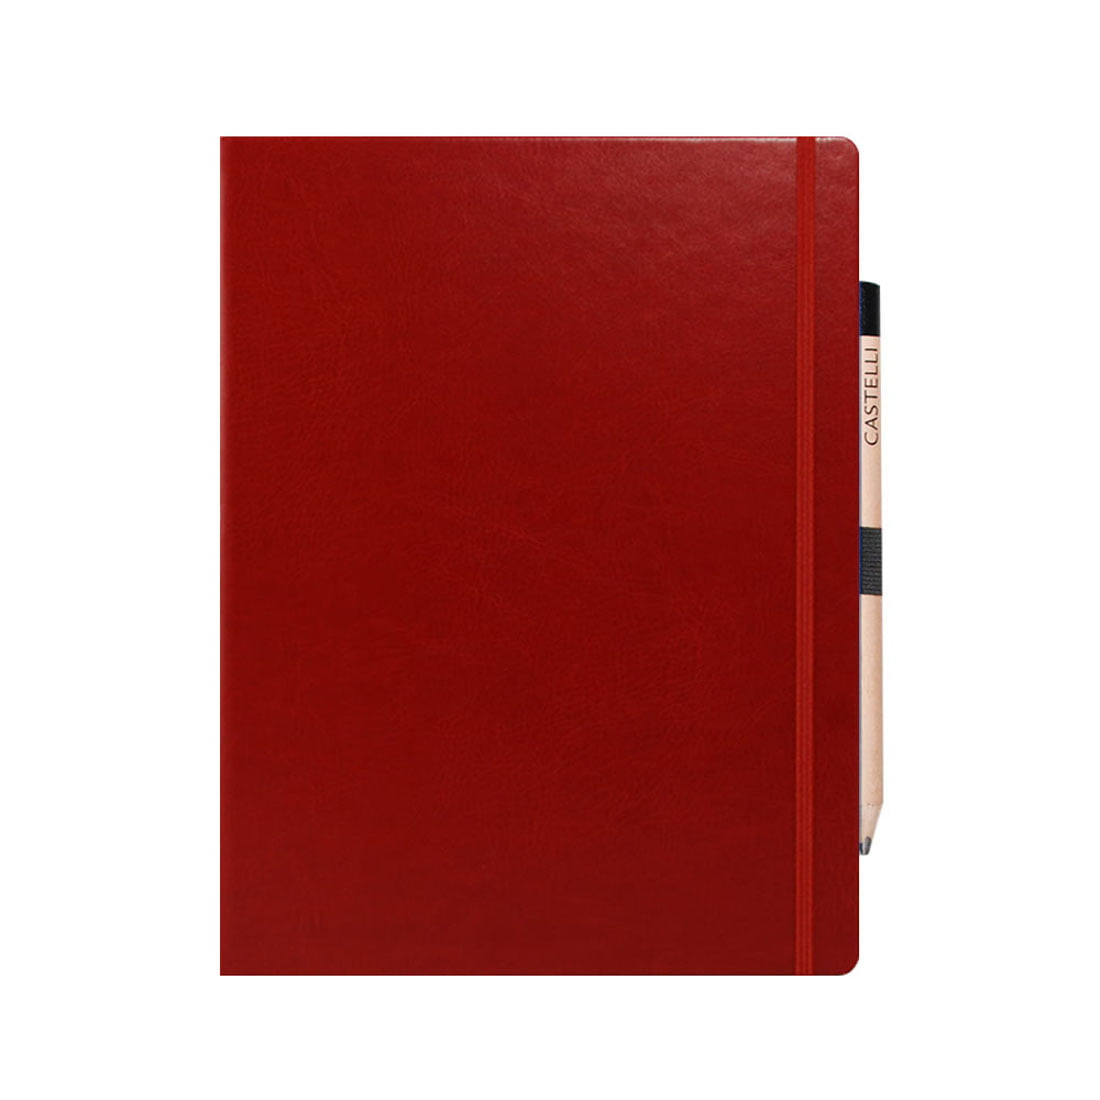 Large notebook with retro style pencil in an elasticated loop. rounded corners, ribbon marker